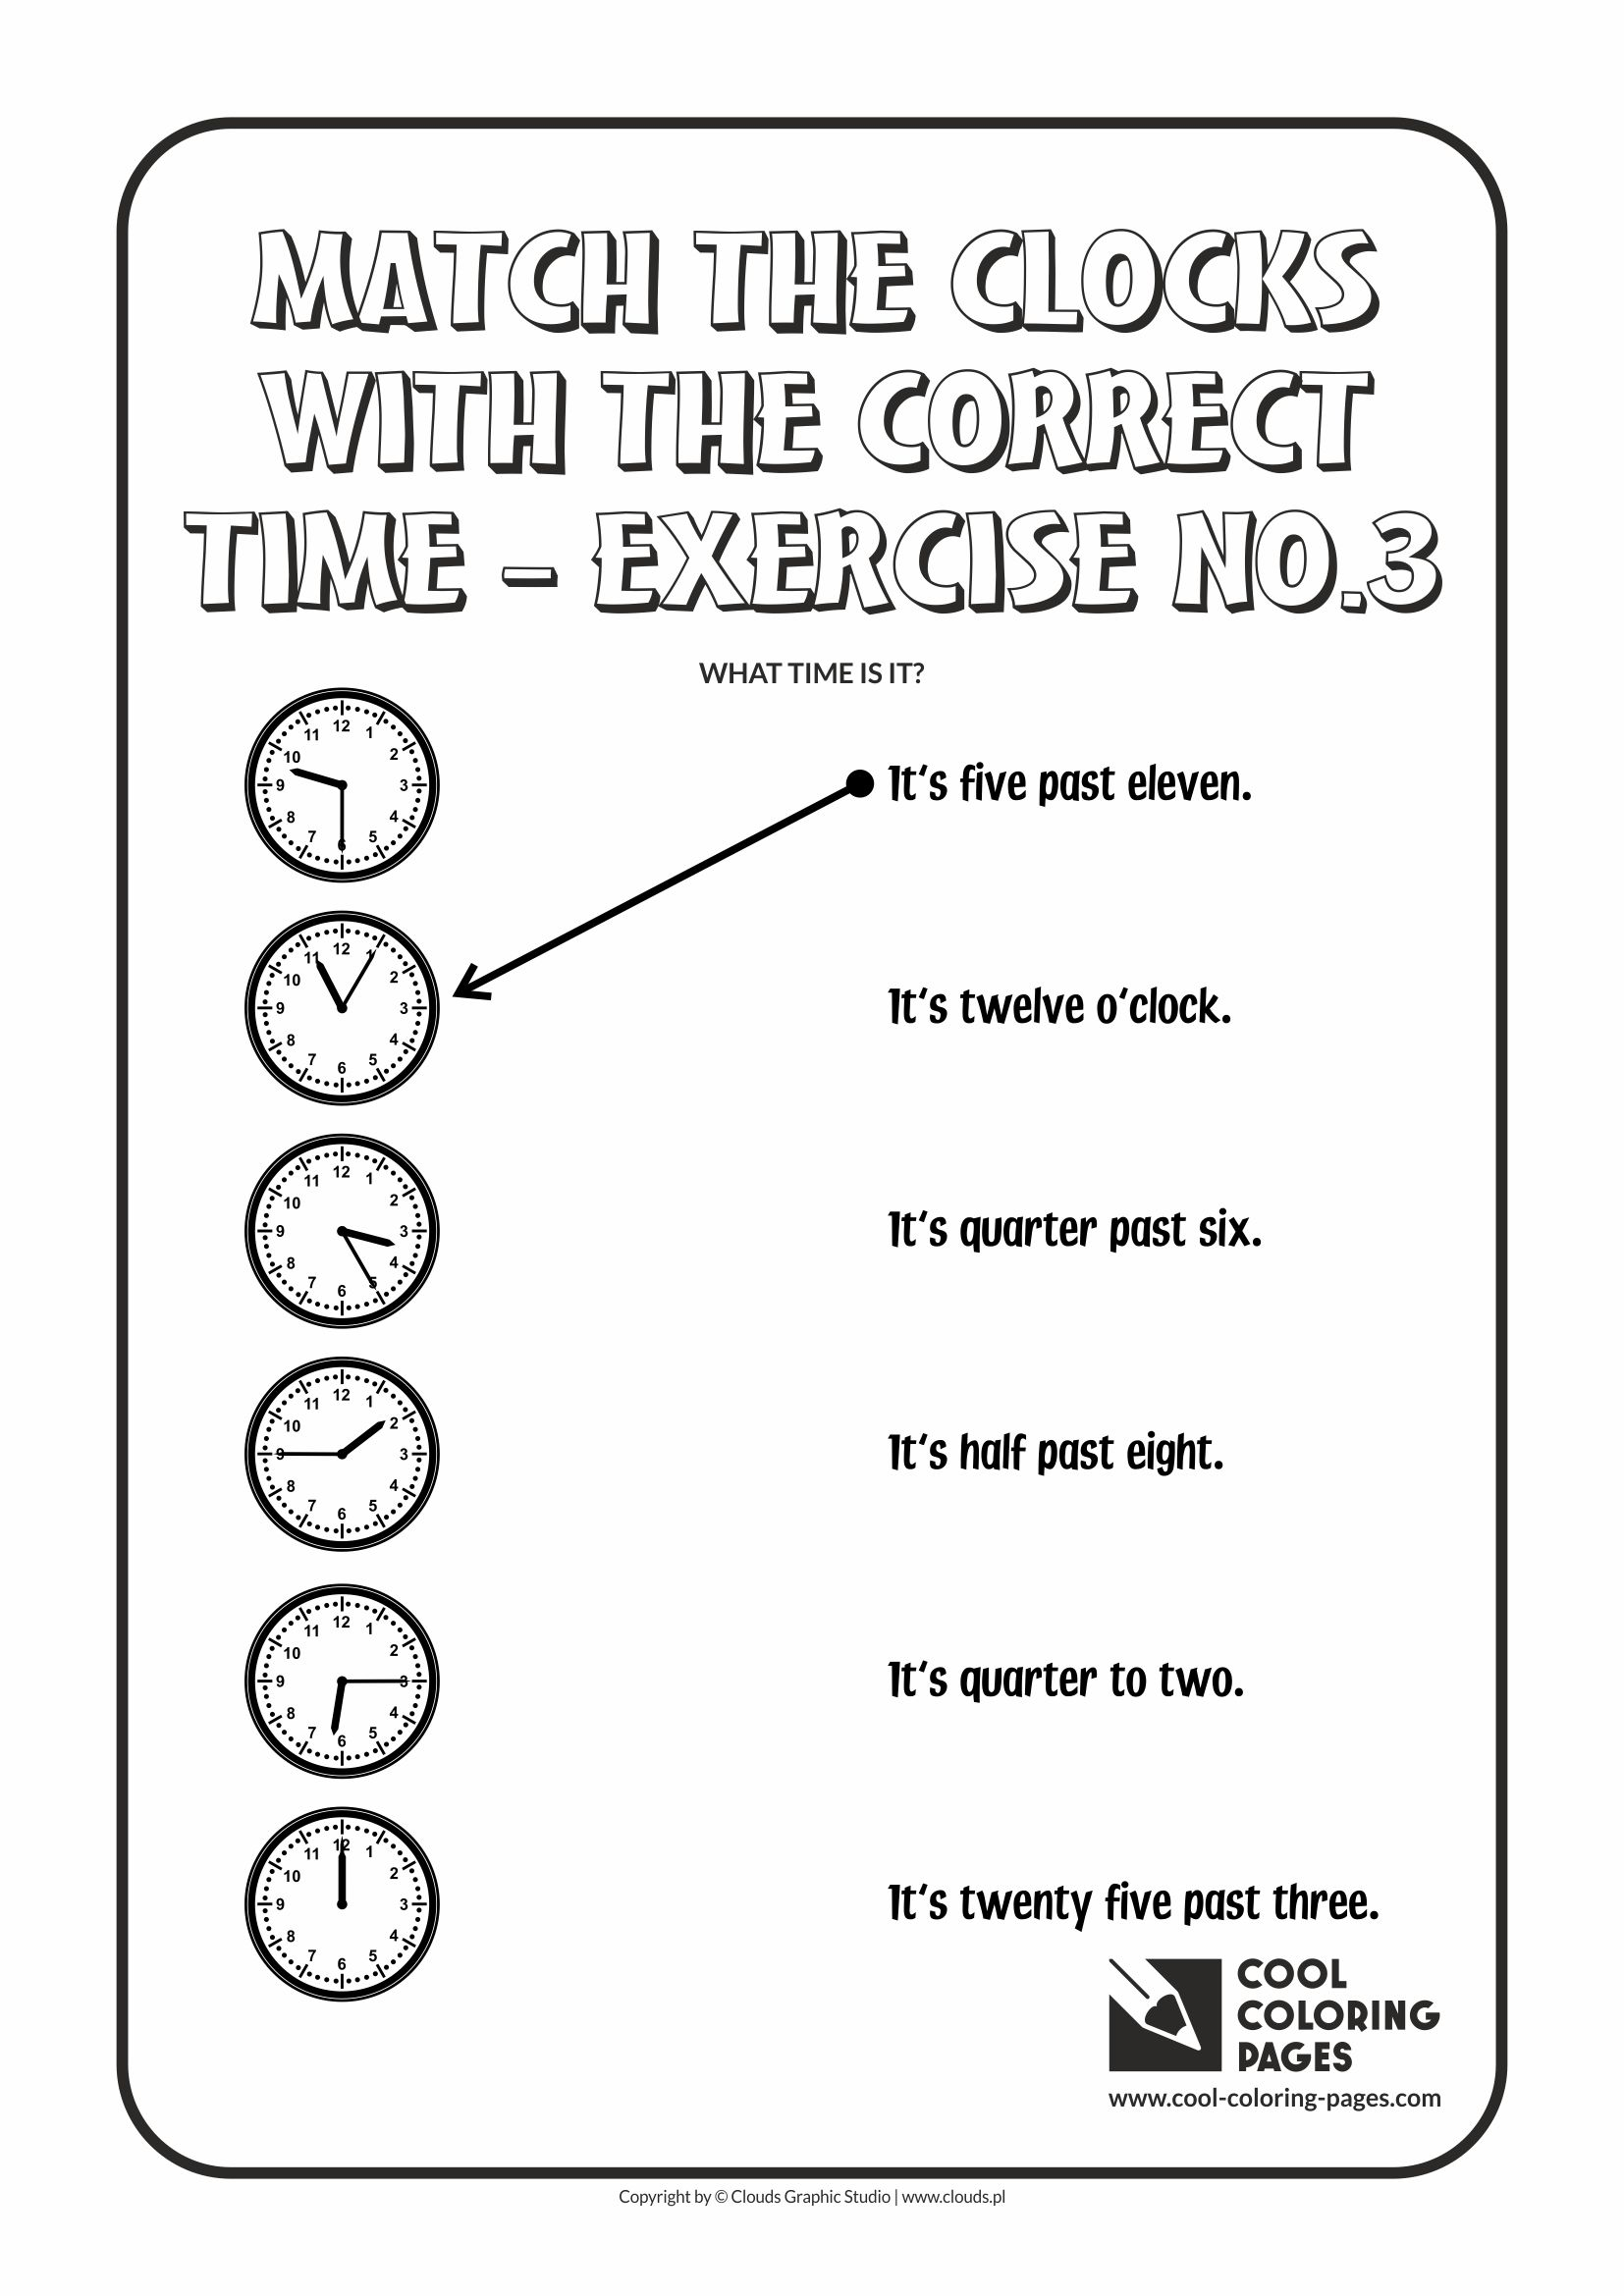 Cool Coloring Pages - Time / Match the clocks with the correct time no.3